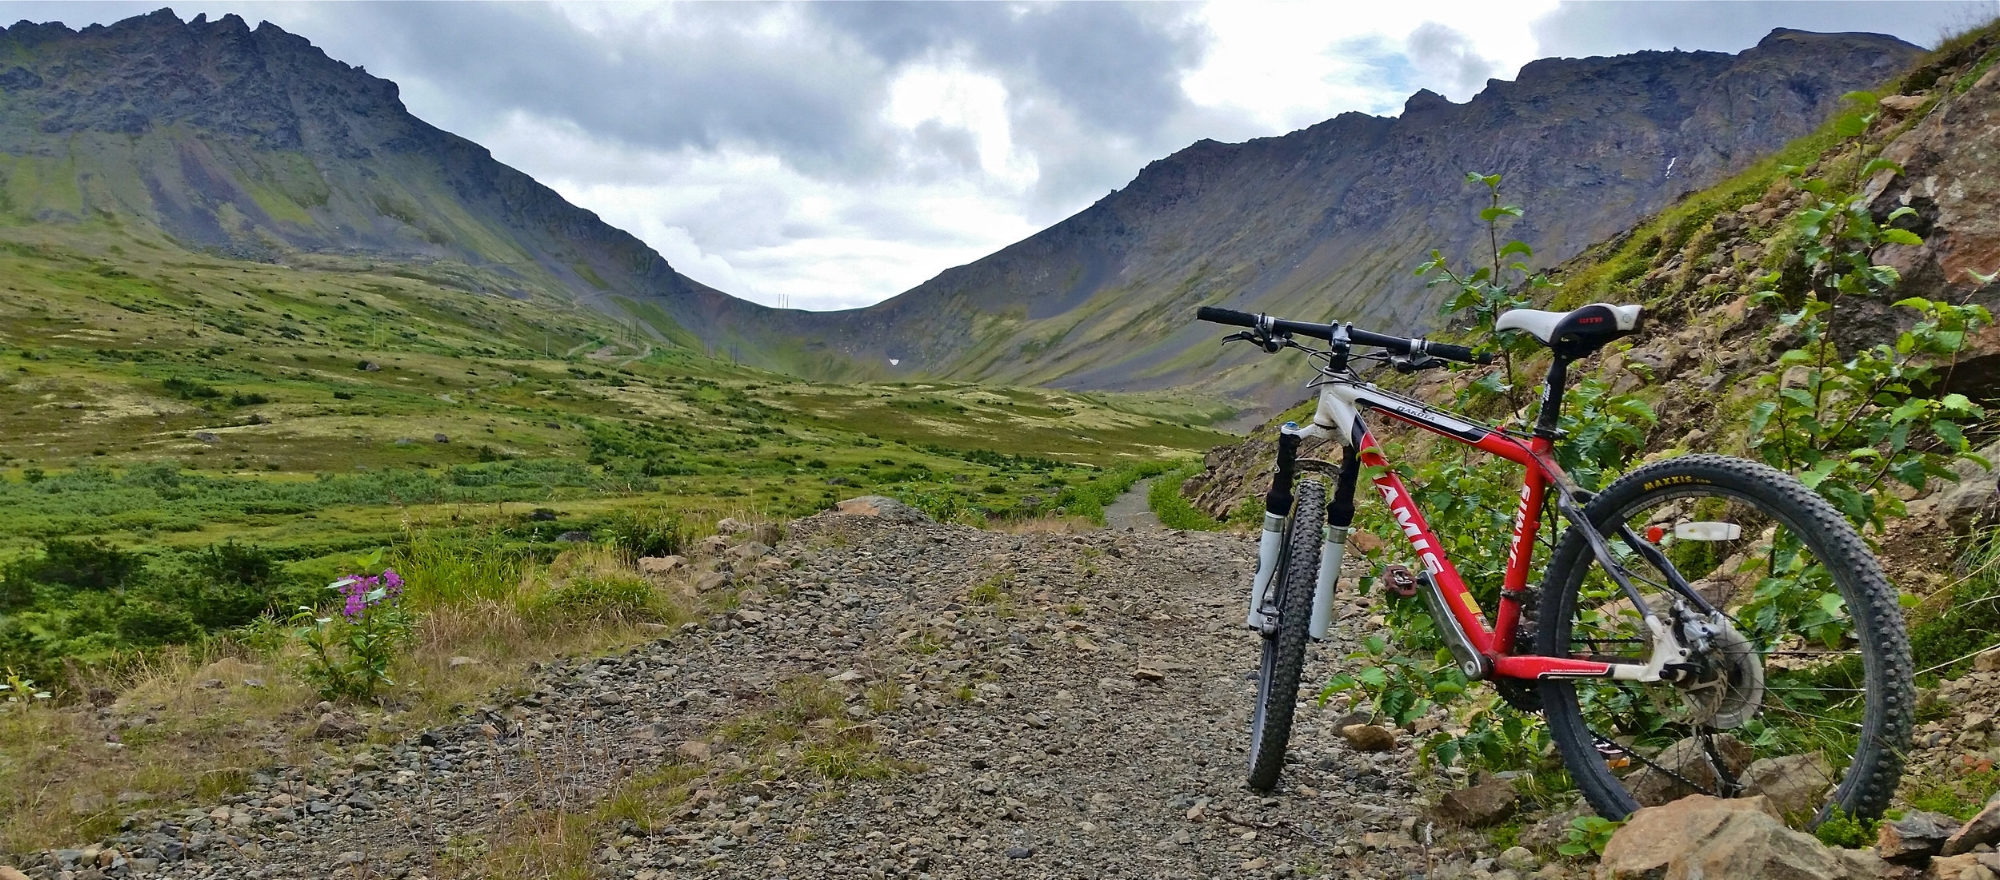 mountain biking on powerline pass in chugach state park